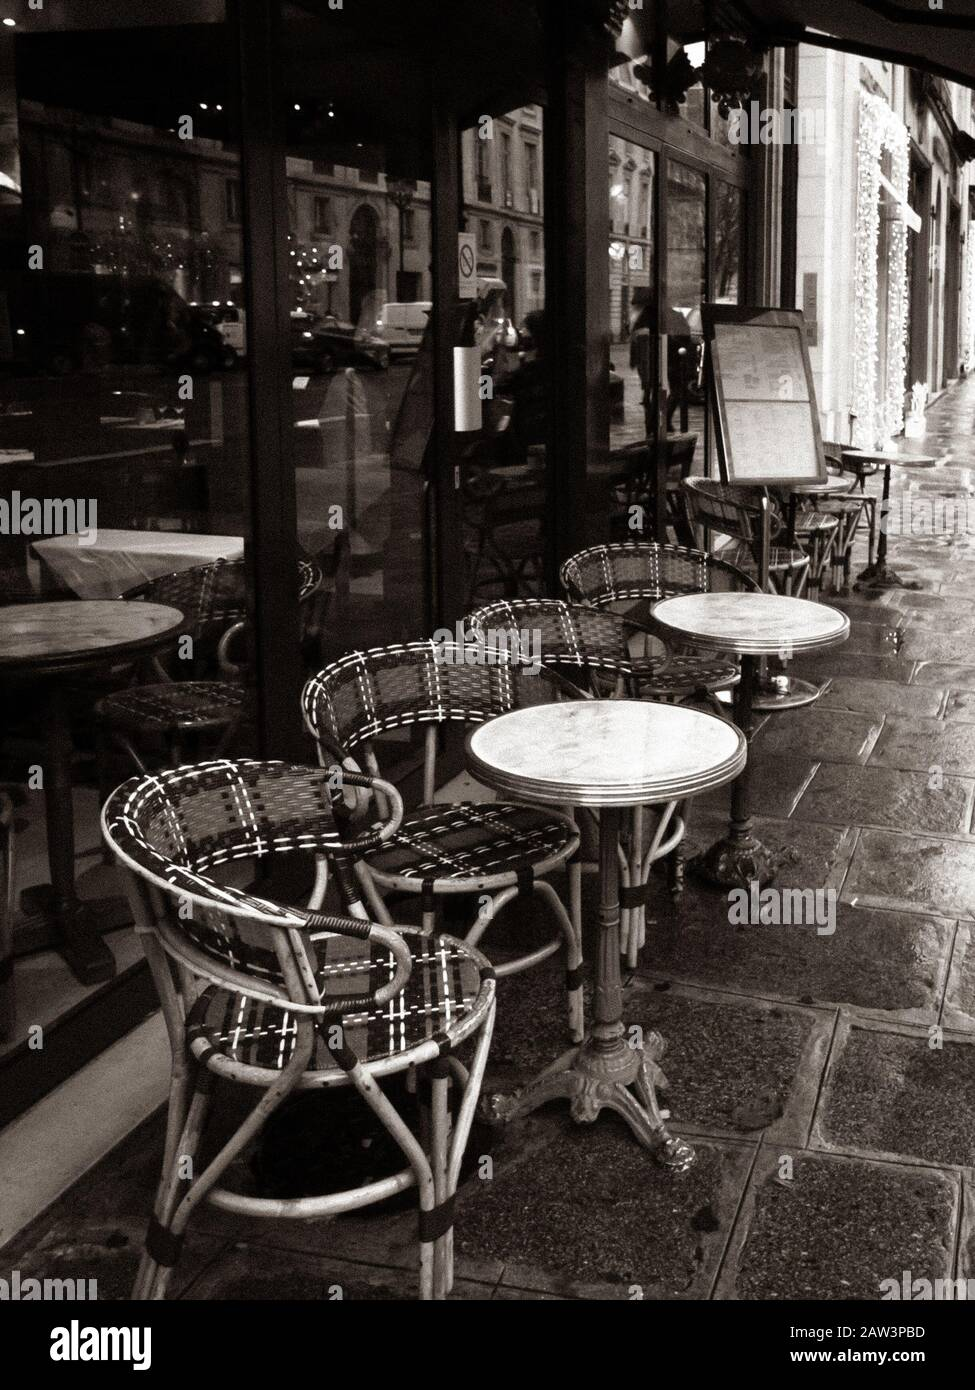 Paris France Parisian Cafe Tables And Chairs On Paved Sidewalk Black And White Photo Stock Photo Alamy